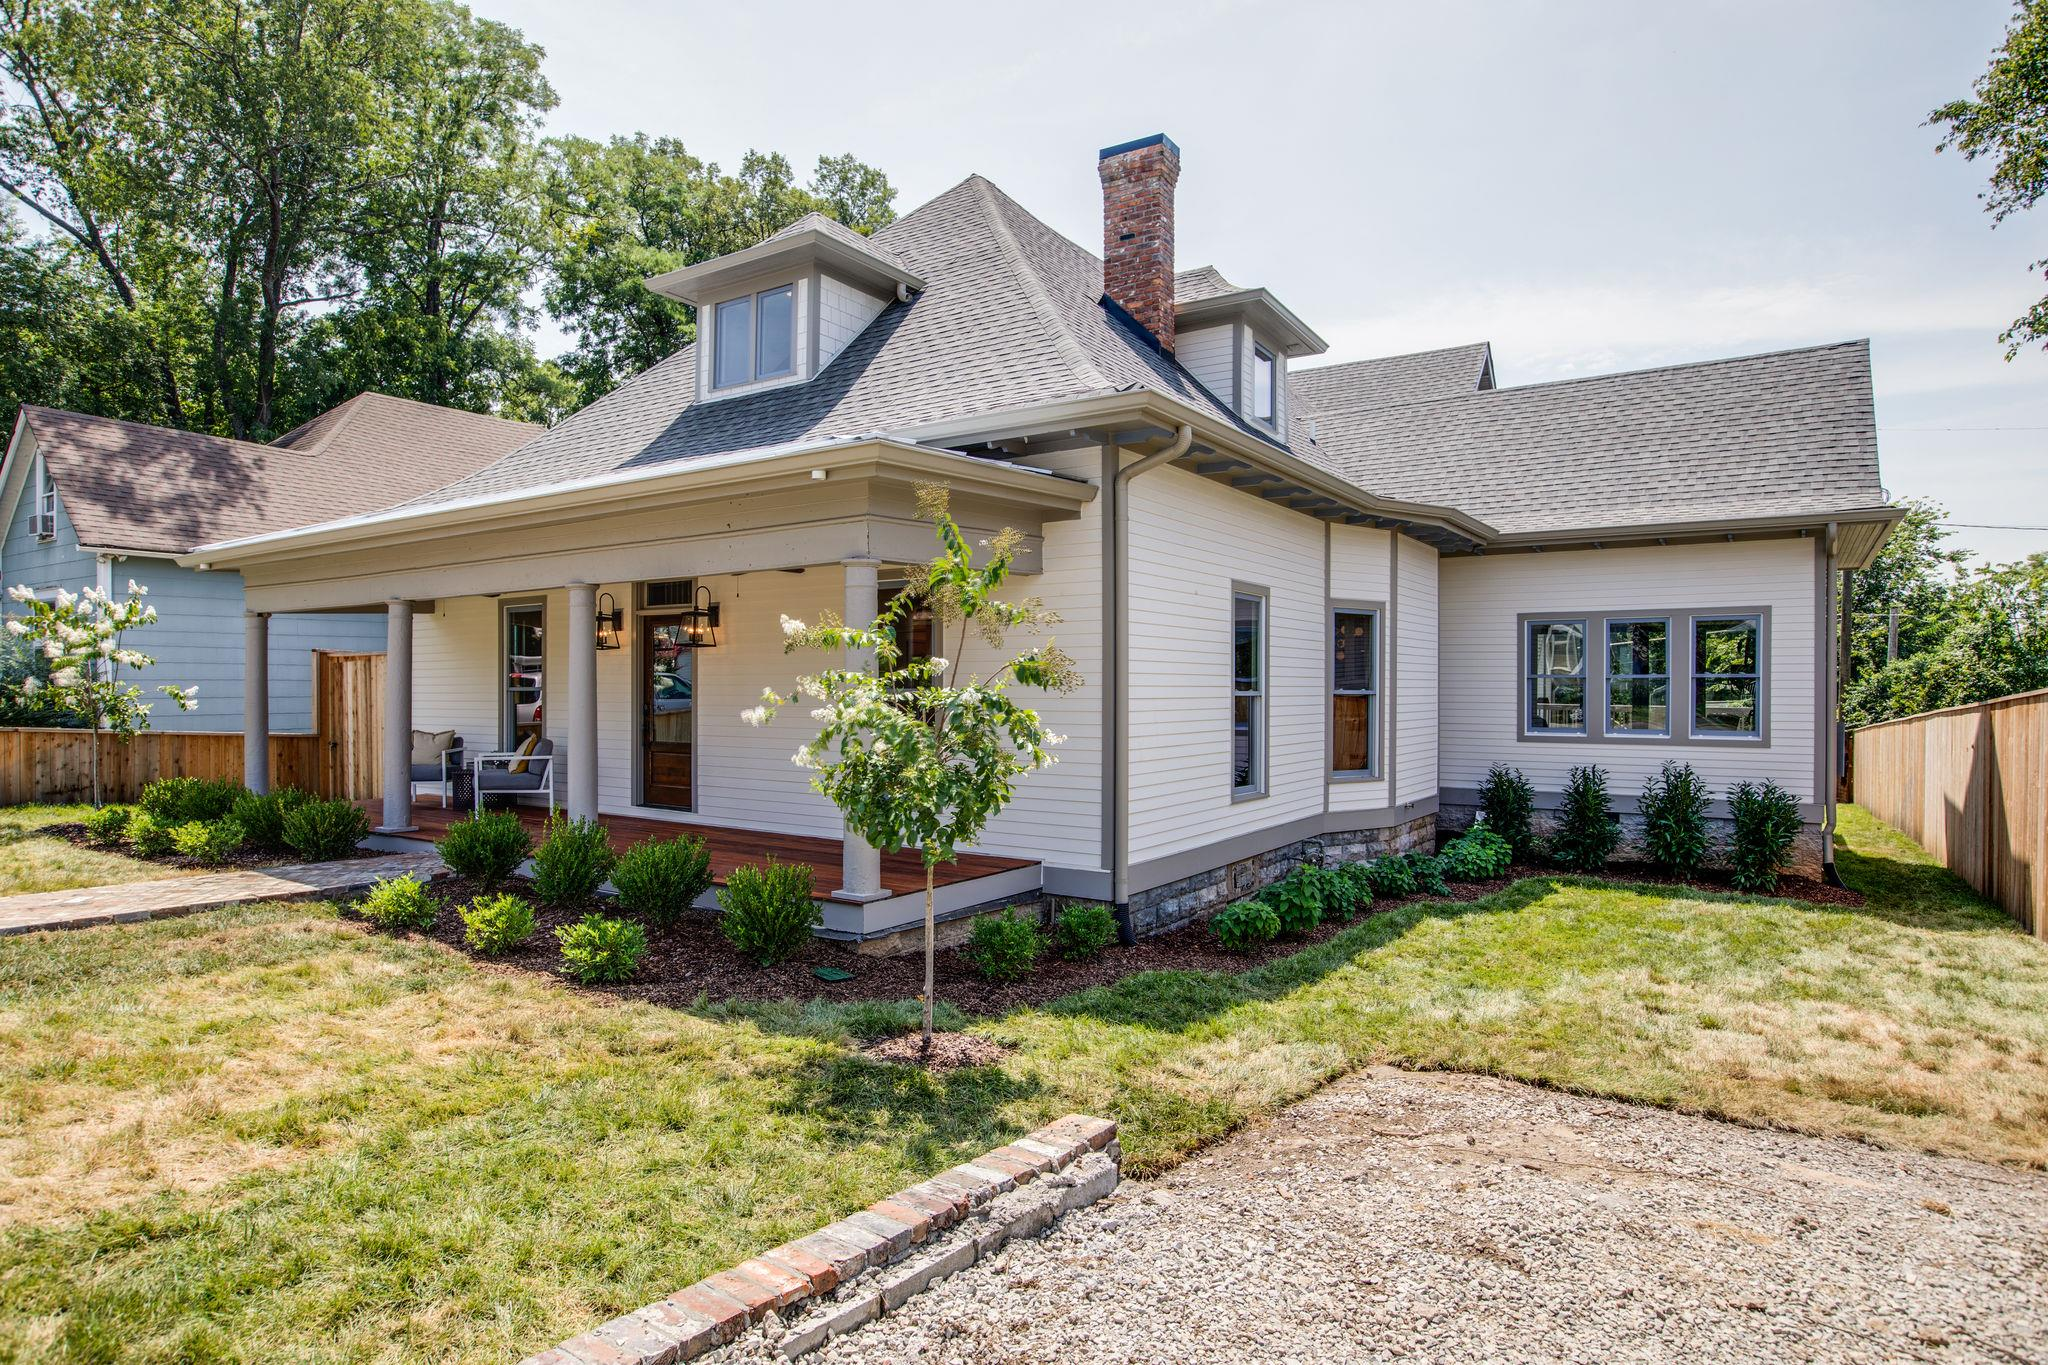 1013 Paris, Nashville, TN 37204 - Nashville, TN real estate listing